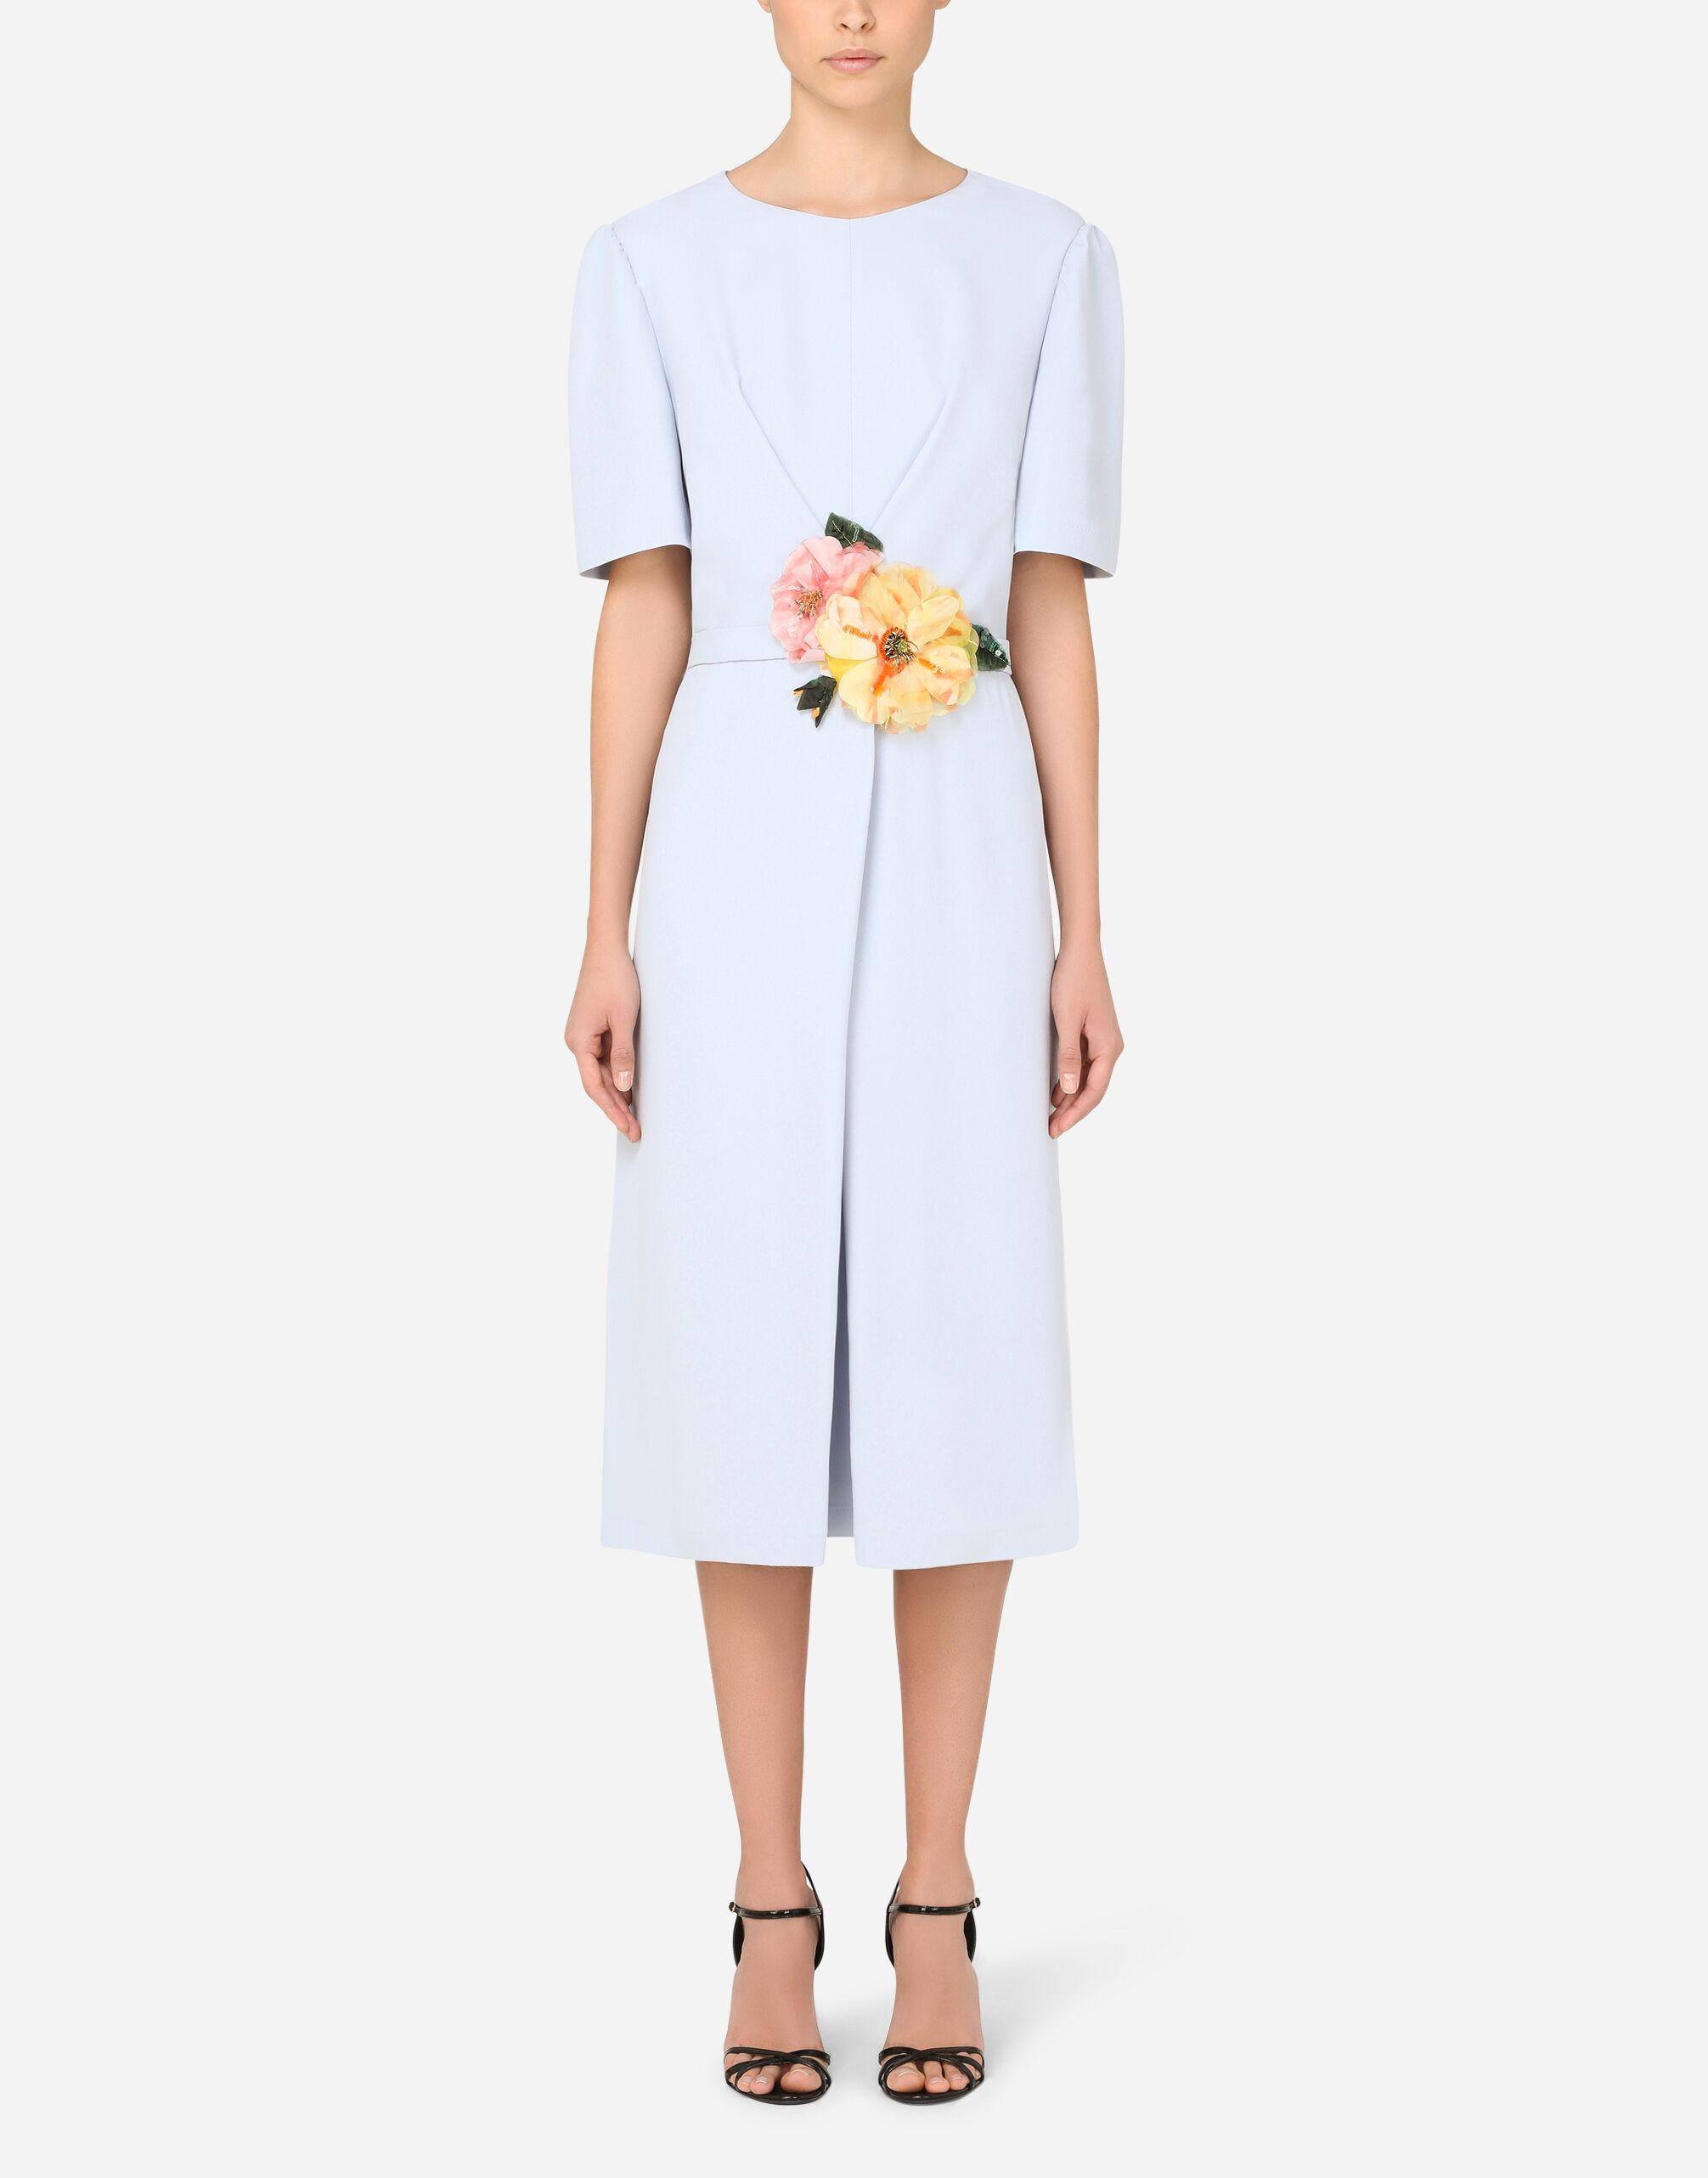 Cady midi dress with floral detailing